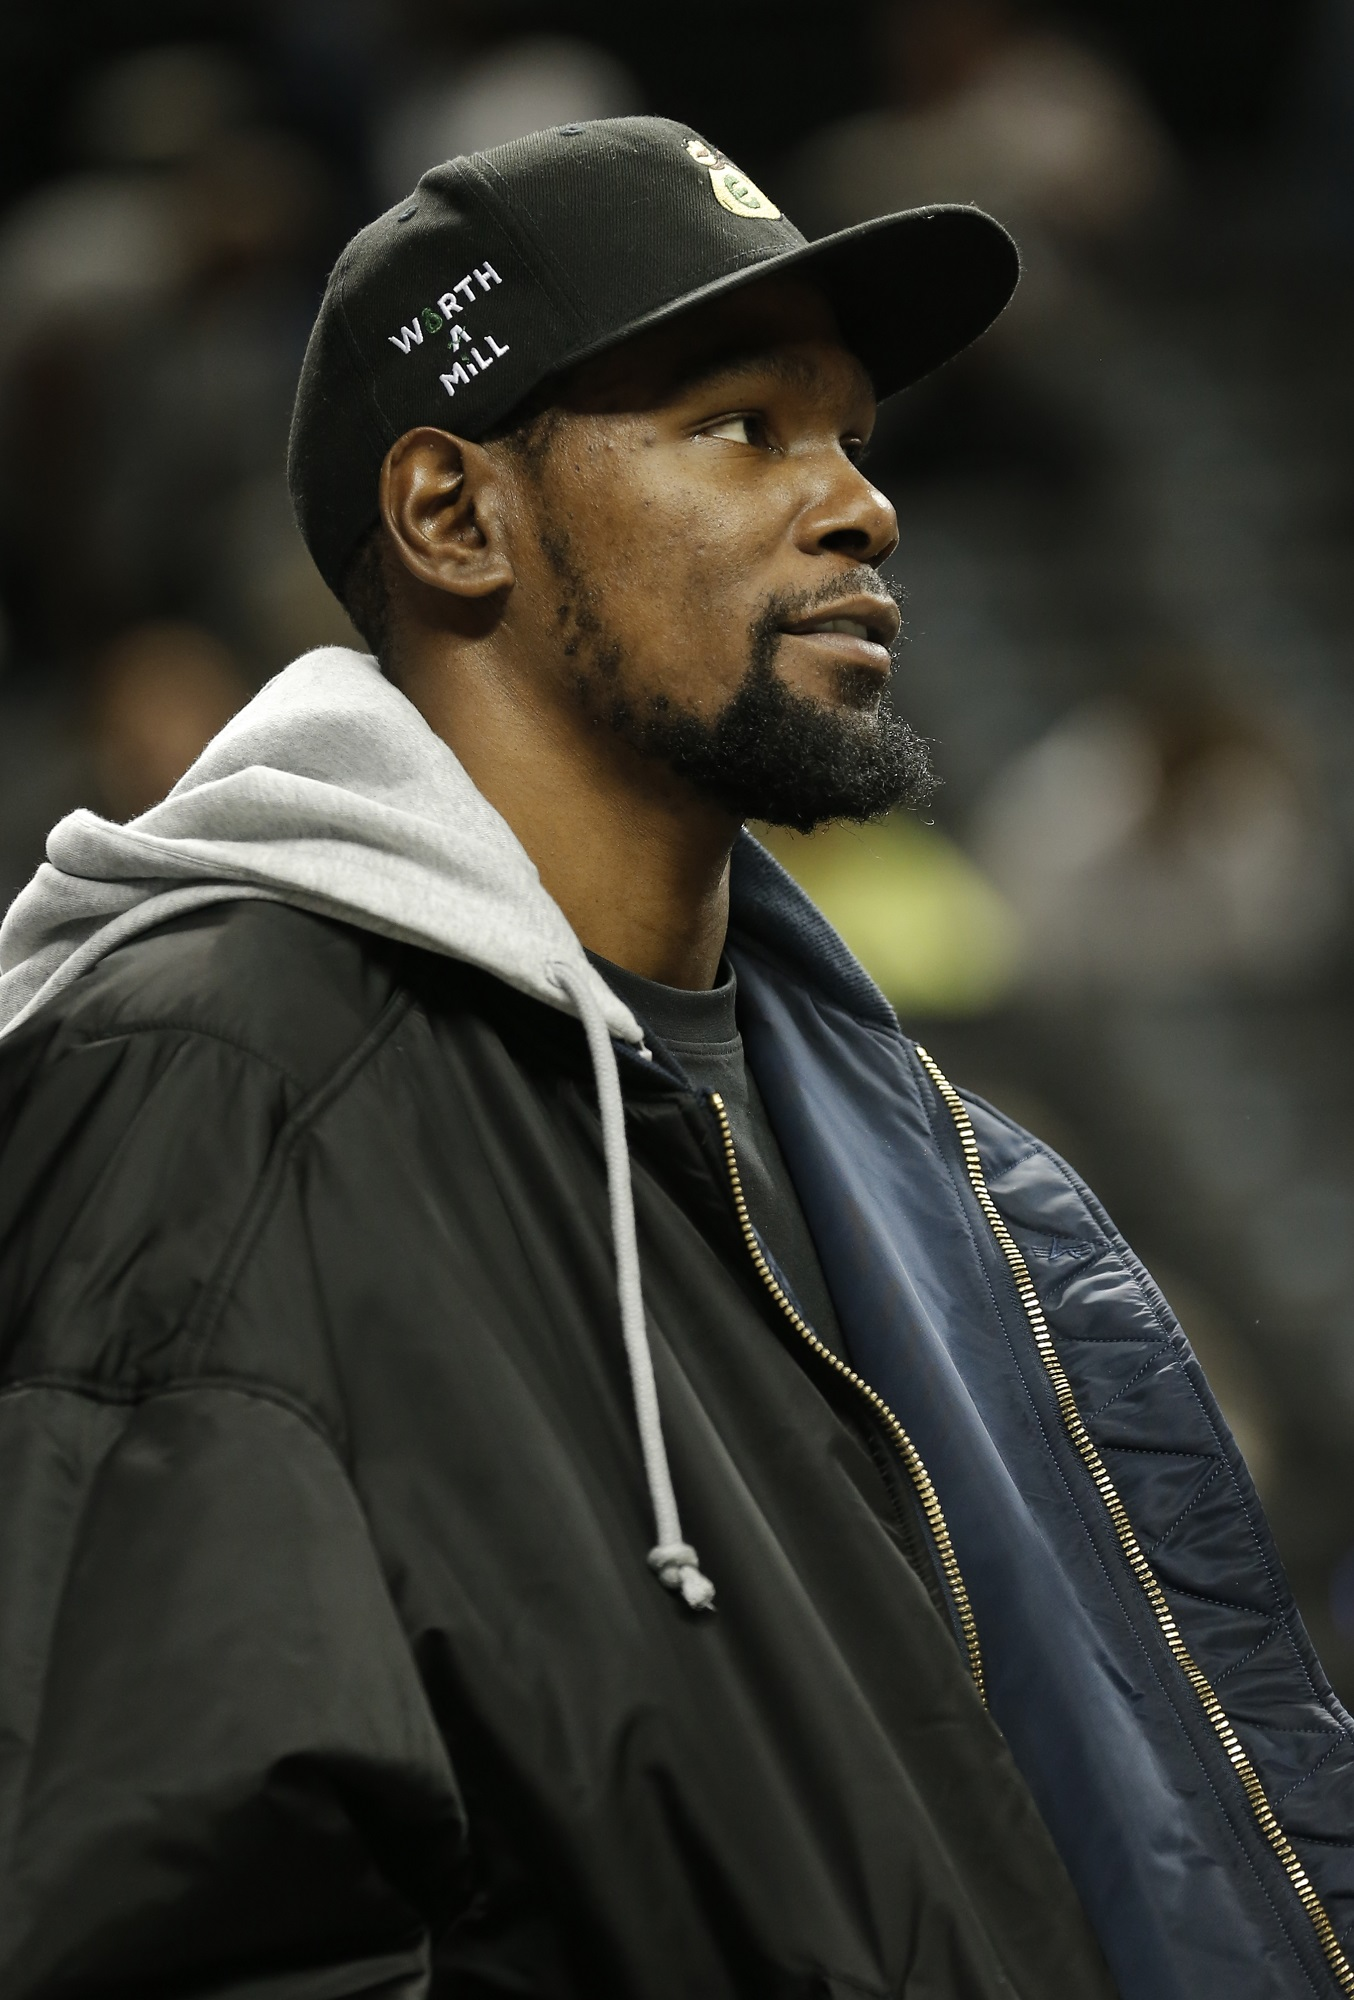 Oct 18, 2019; Brooklyn, NY, USA; Brooklyn Nets forward Kevin Durant (7) before the game against the Toronto Raptors at Barclays Center. Mandatory Credit: Nicole Sweet-USA TODAY Sports - 13534990